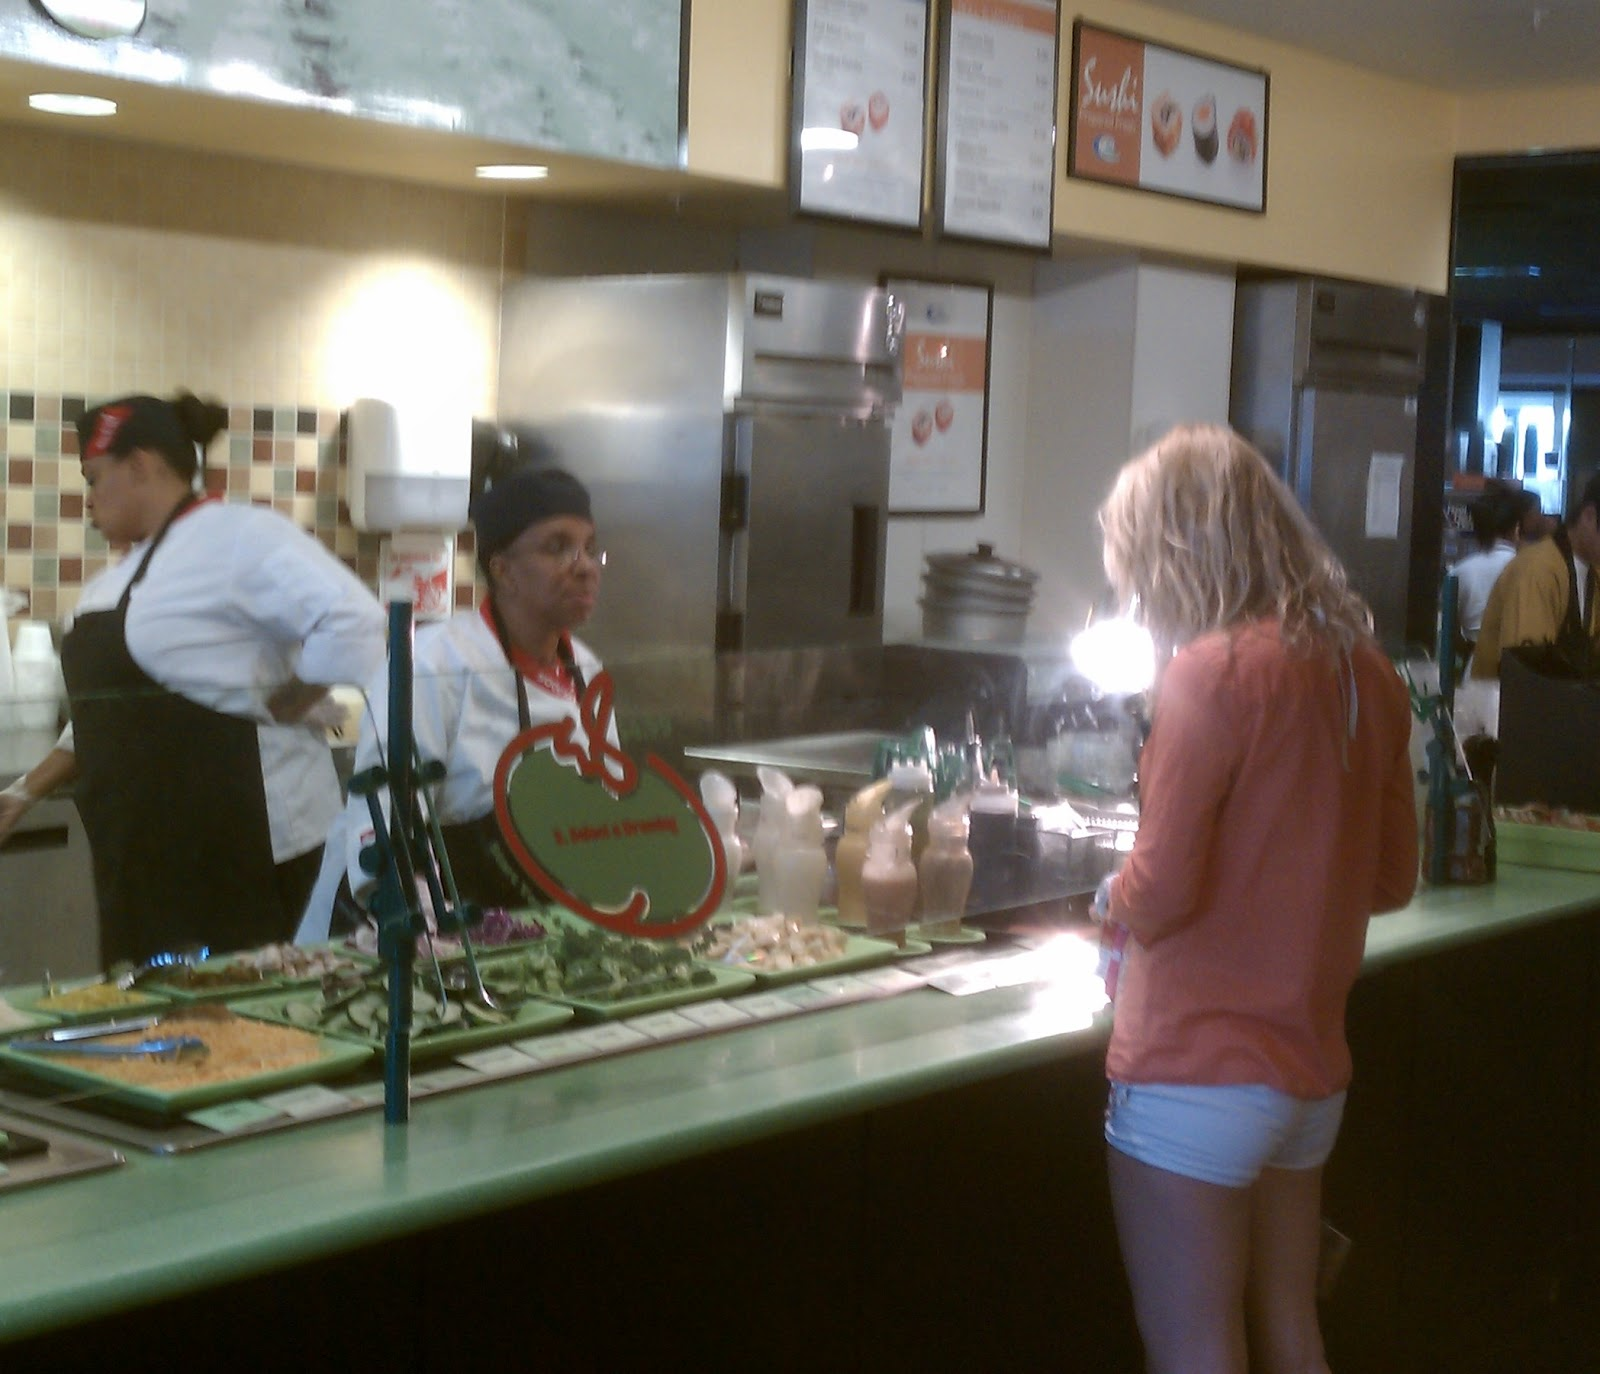 Now There Are A Number Of Places To Eat At The Lbc, Including Baja Fresh  (texmex), Byblos (greek), Panda Express (chinese), Quiznos (sandwiches),